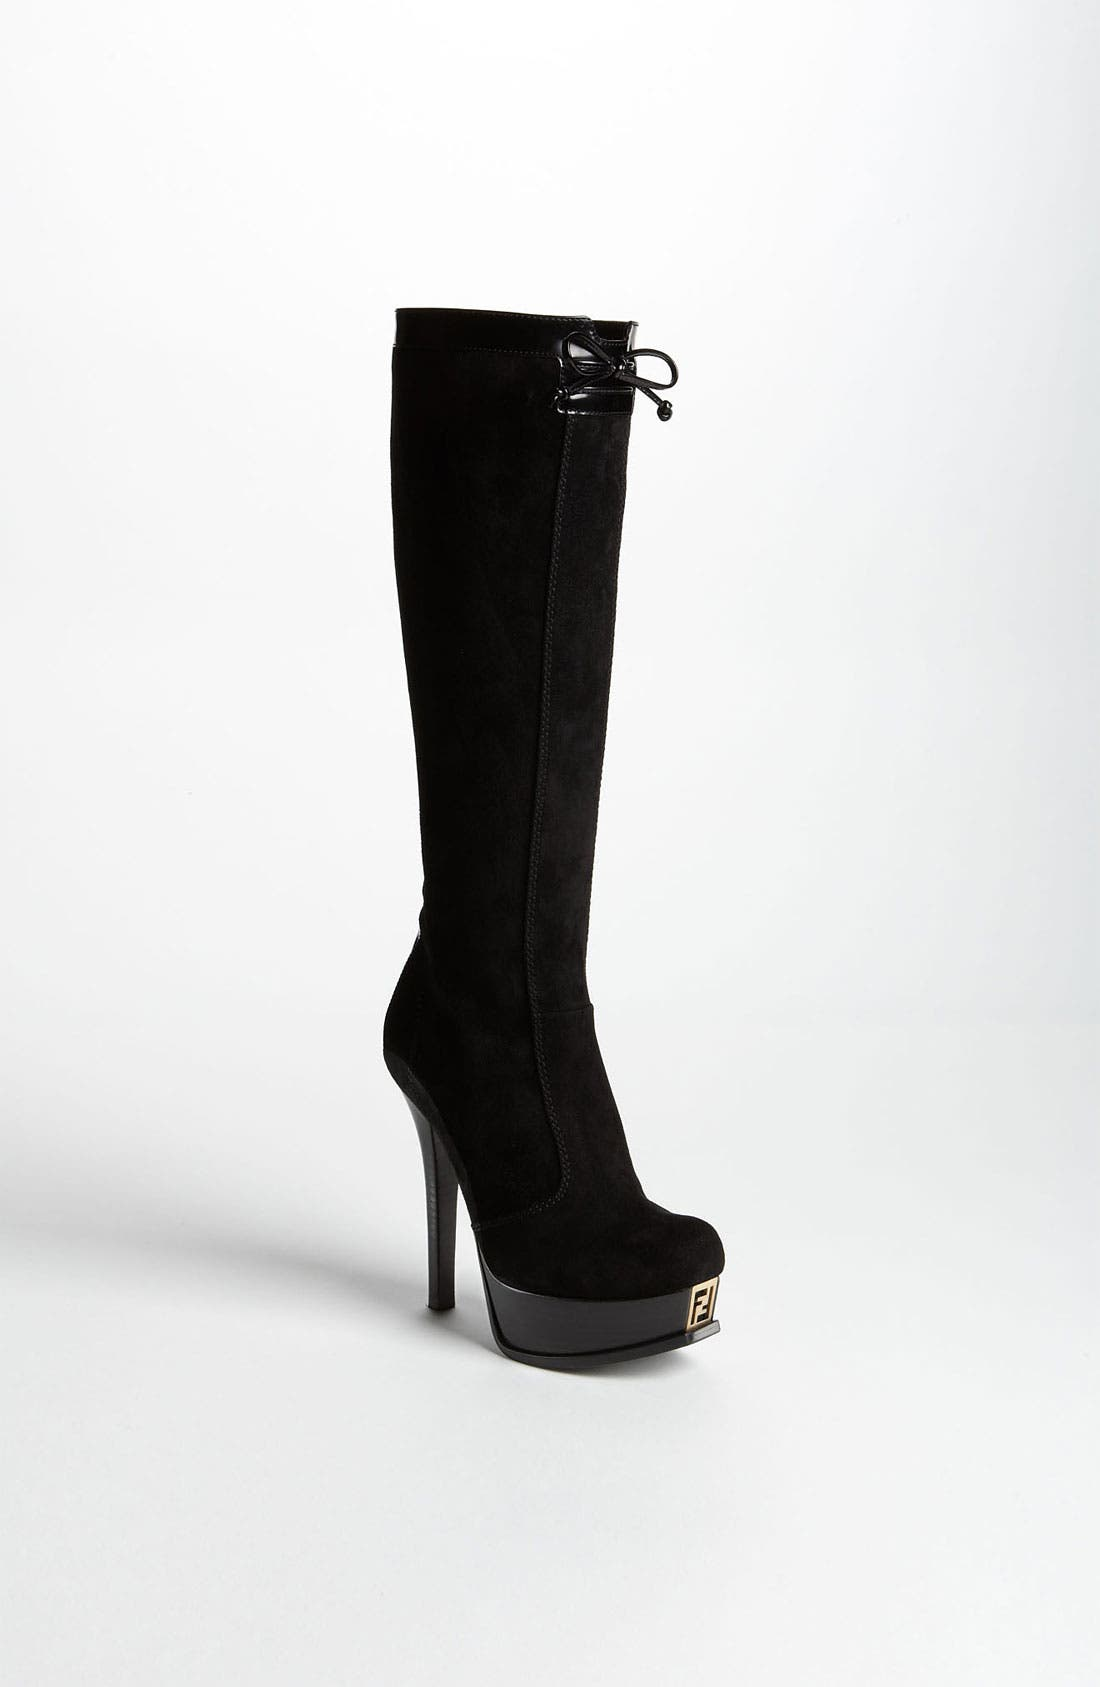 Main Image - Fendi 'Fendista' Tall Boot